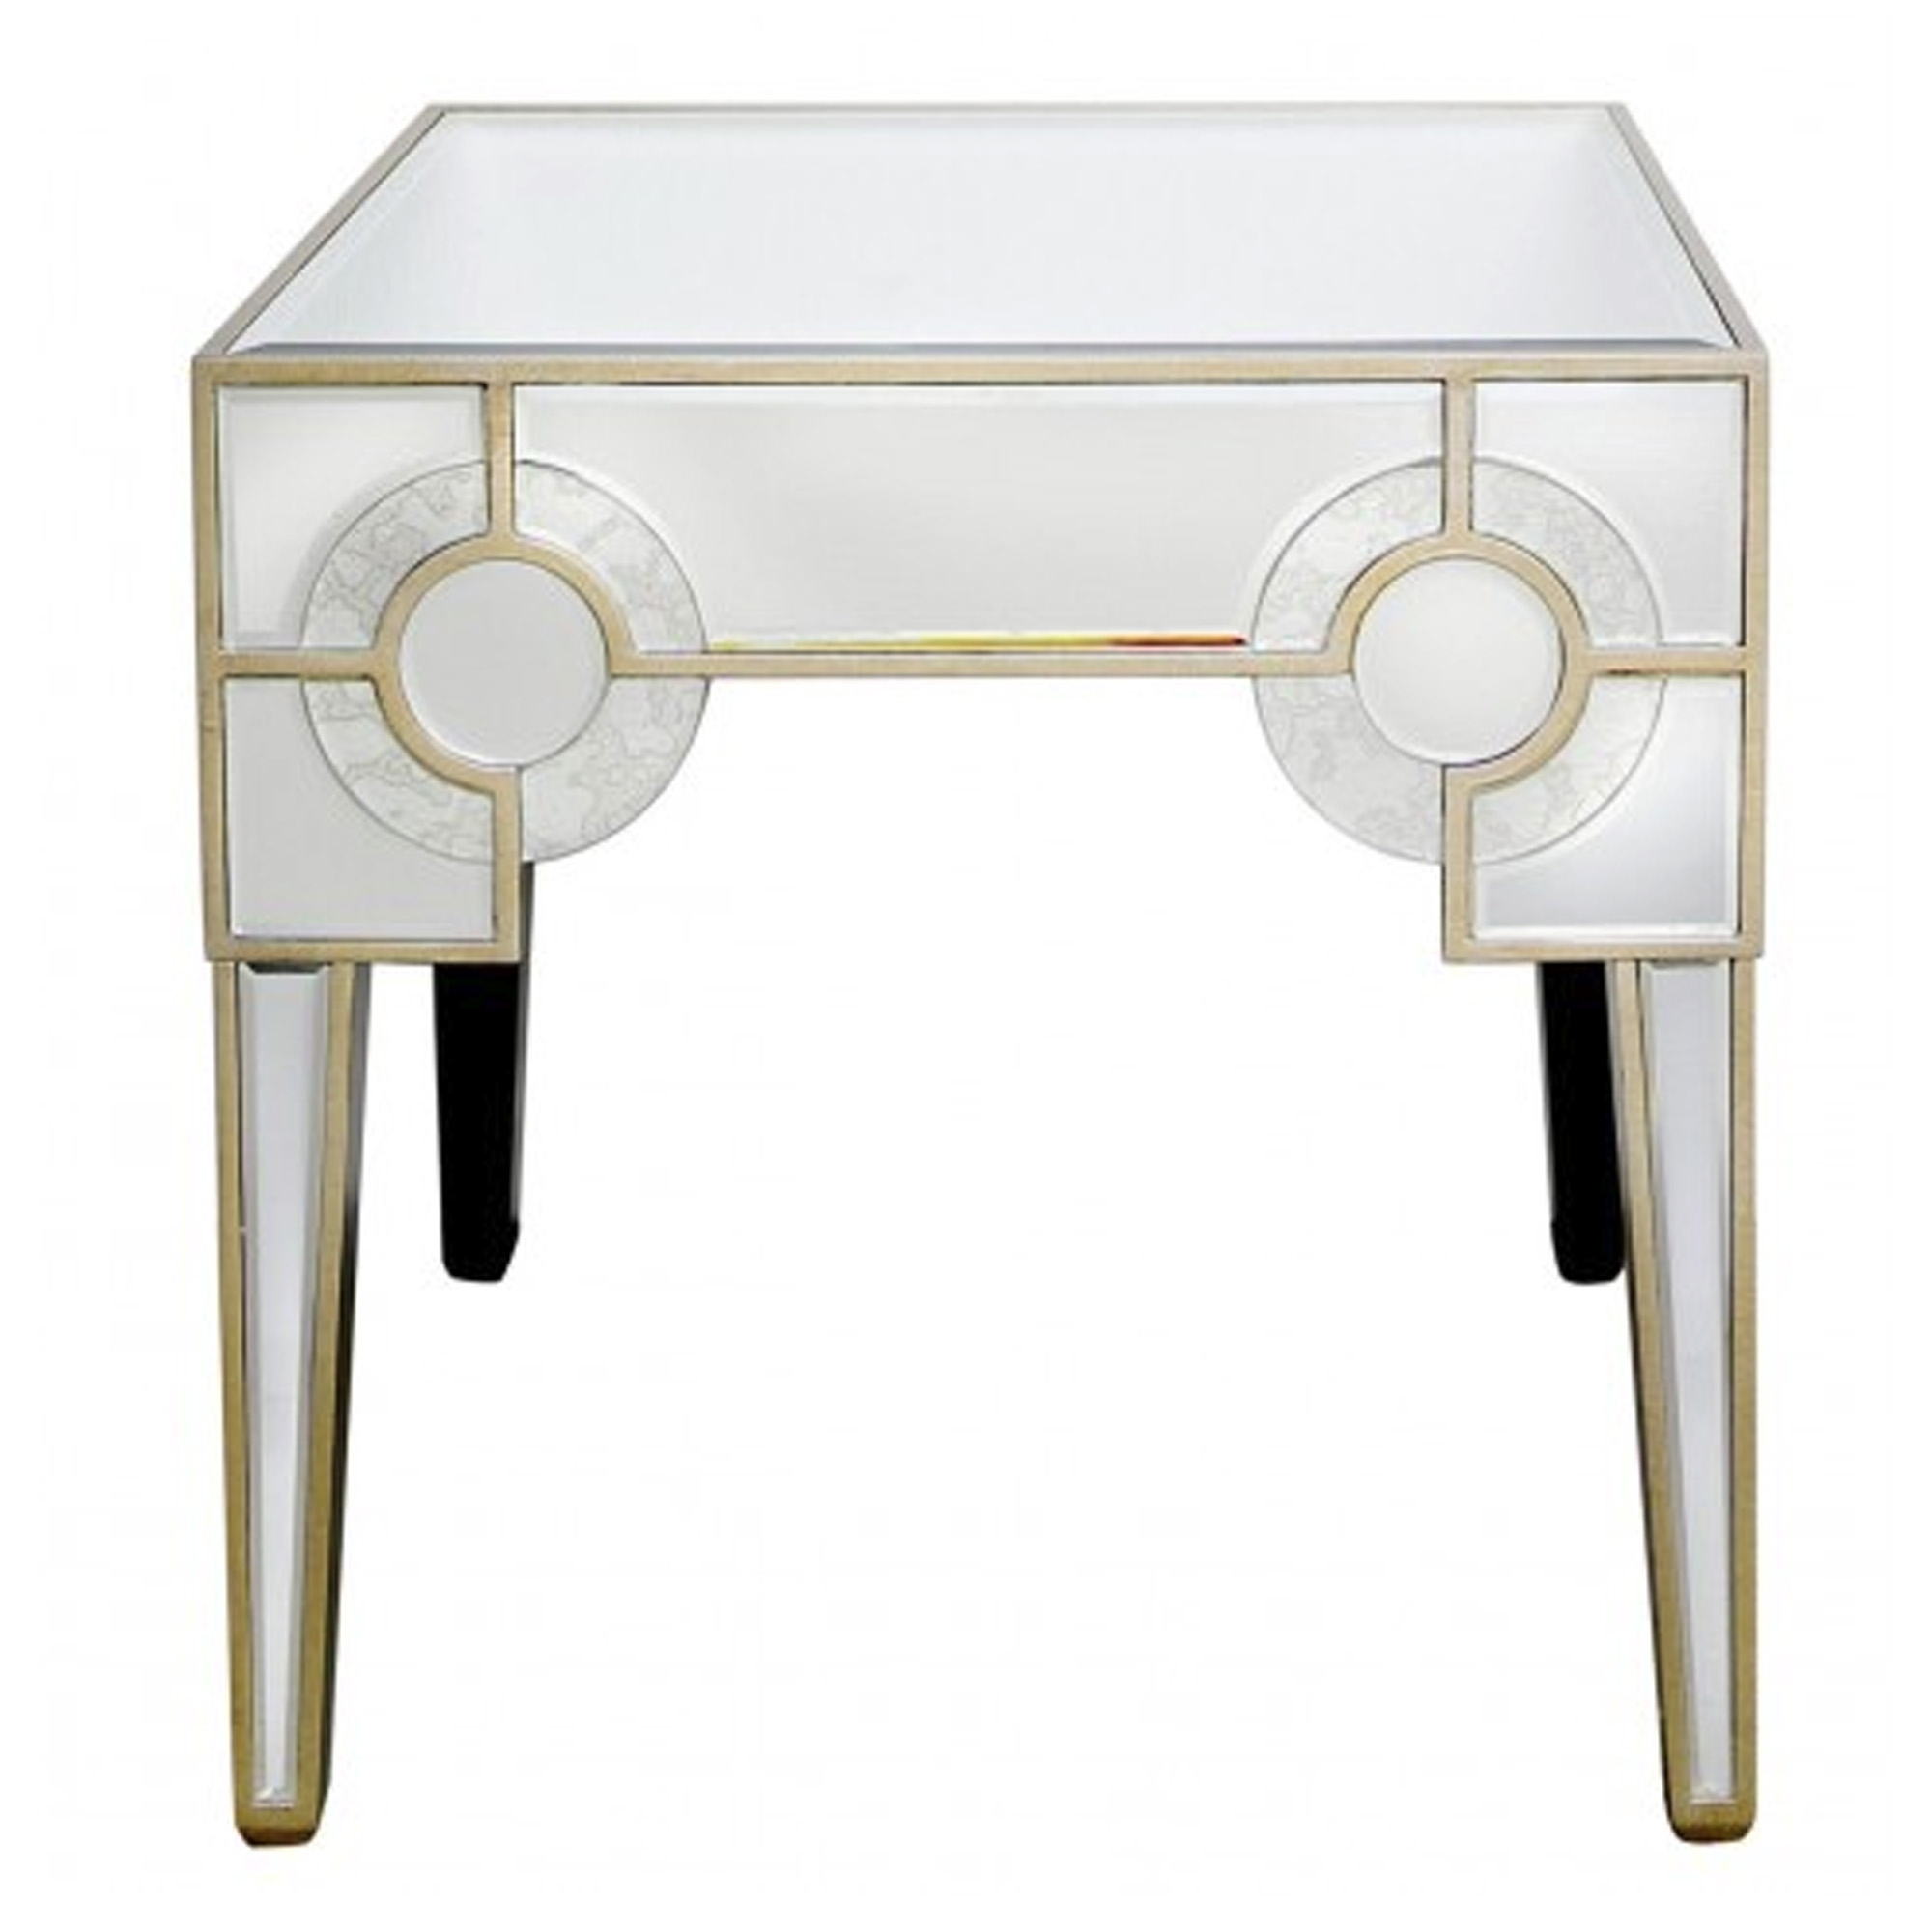 winning mirrored cube end table tables john accent storage lewis tissue side bedside box gold vase shelf astoria glass gumtree full size west elm hanging lamp antique tier cast